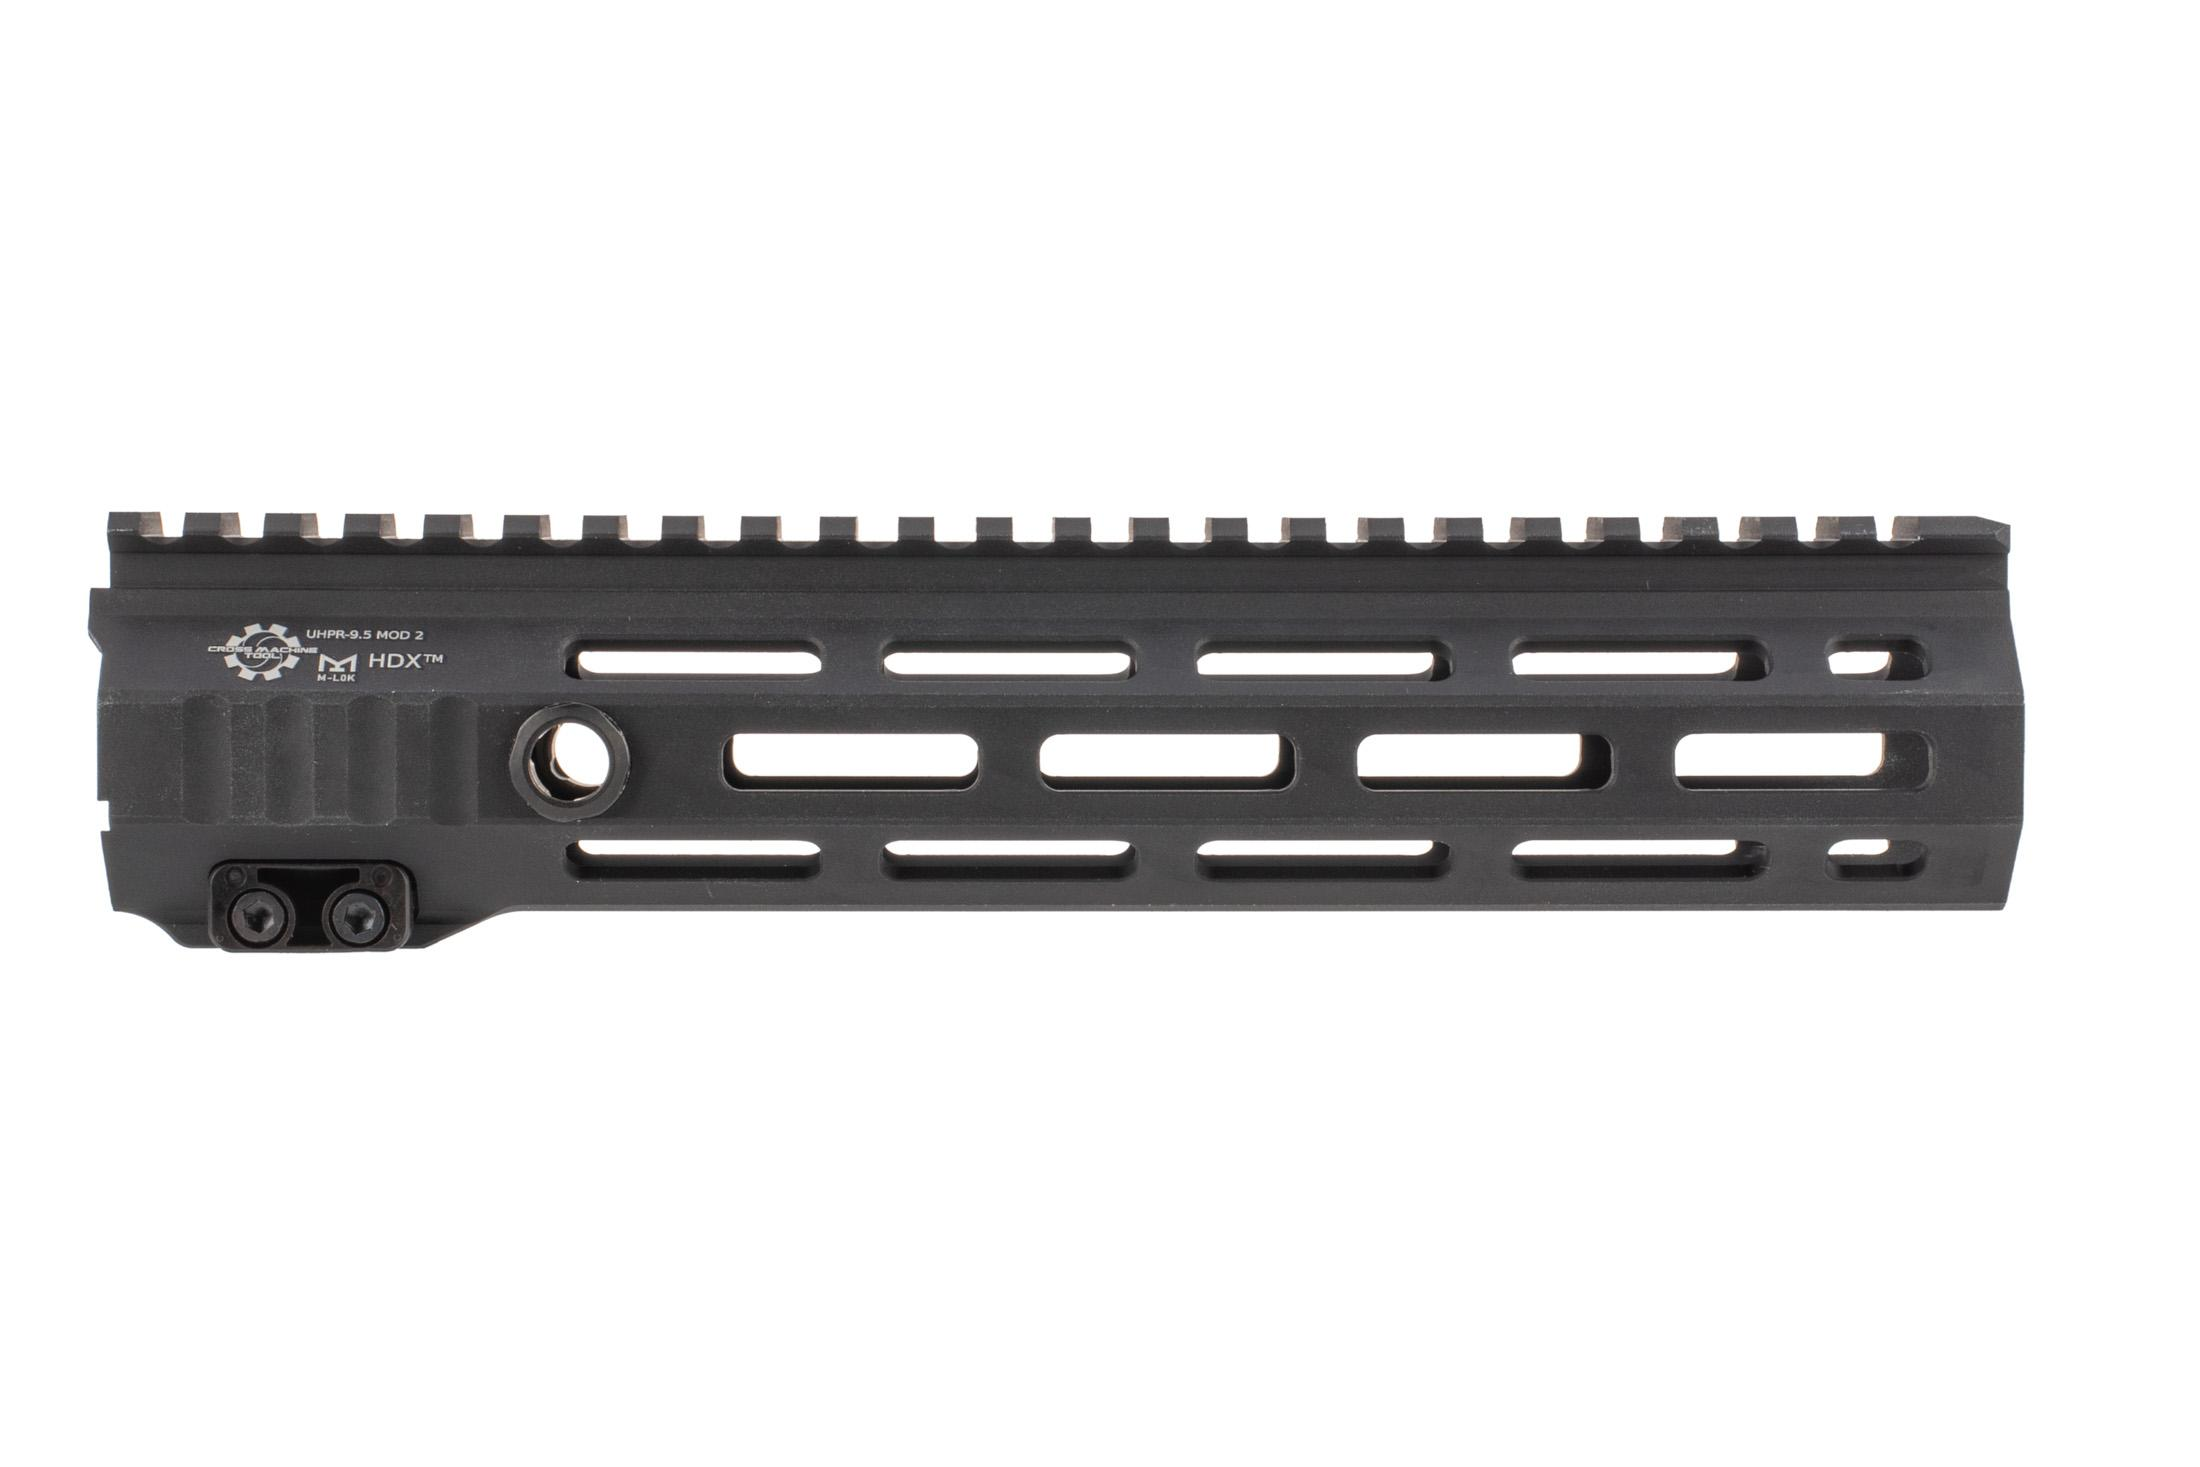 The Cross Machine Tool UHPR Mod 2 HDK 9.5 AR15 handguard features QD sling swivel sockets